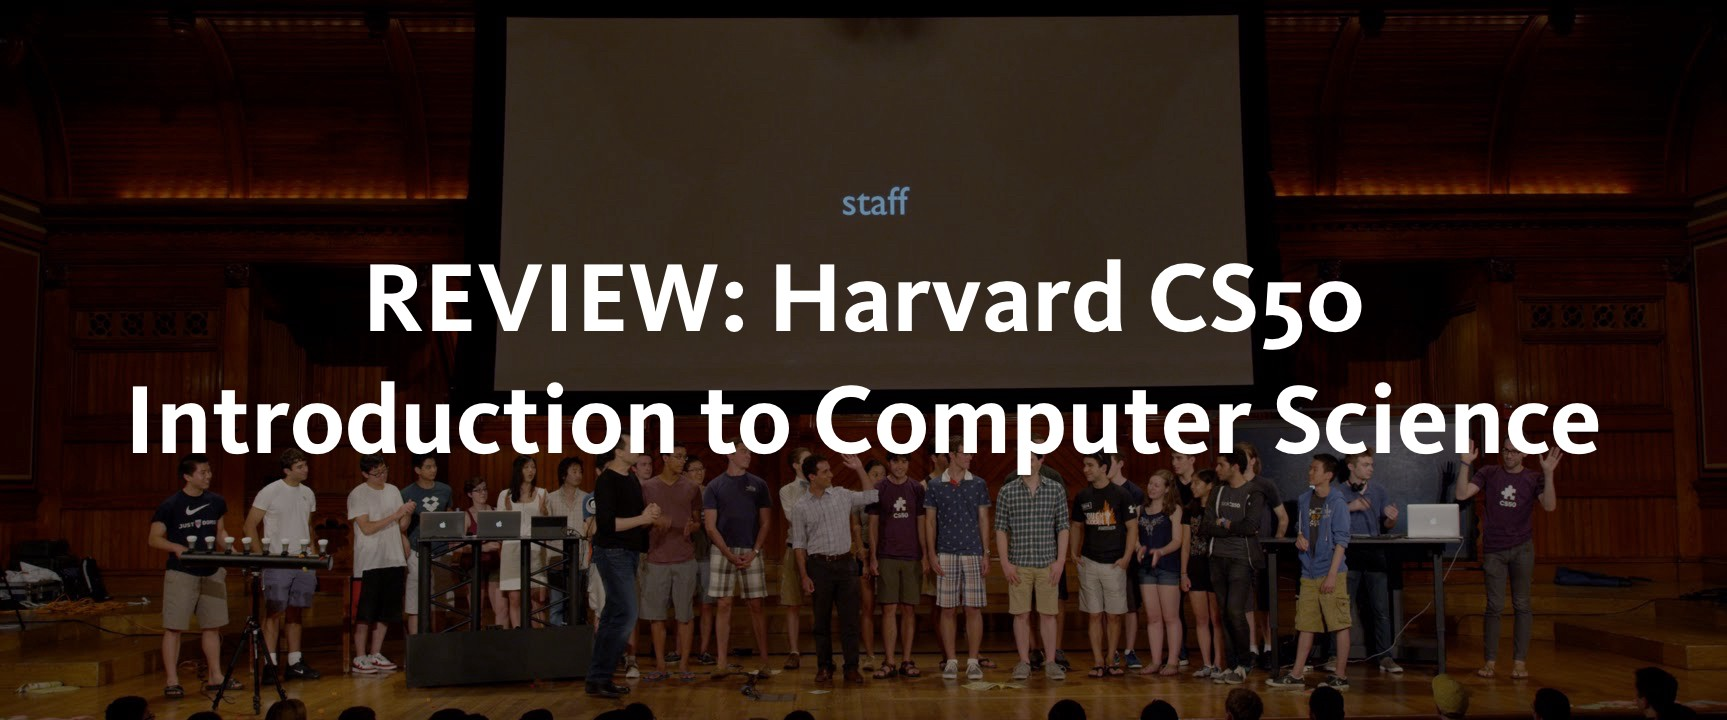 REVIEW: Harvard CS50 Introduction to Computer Science